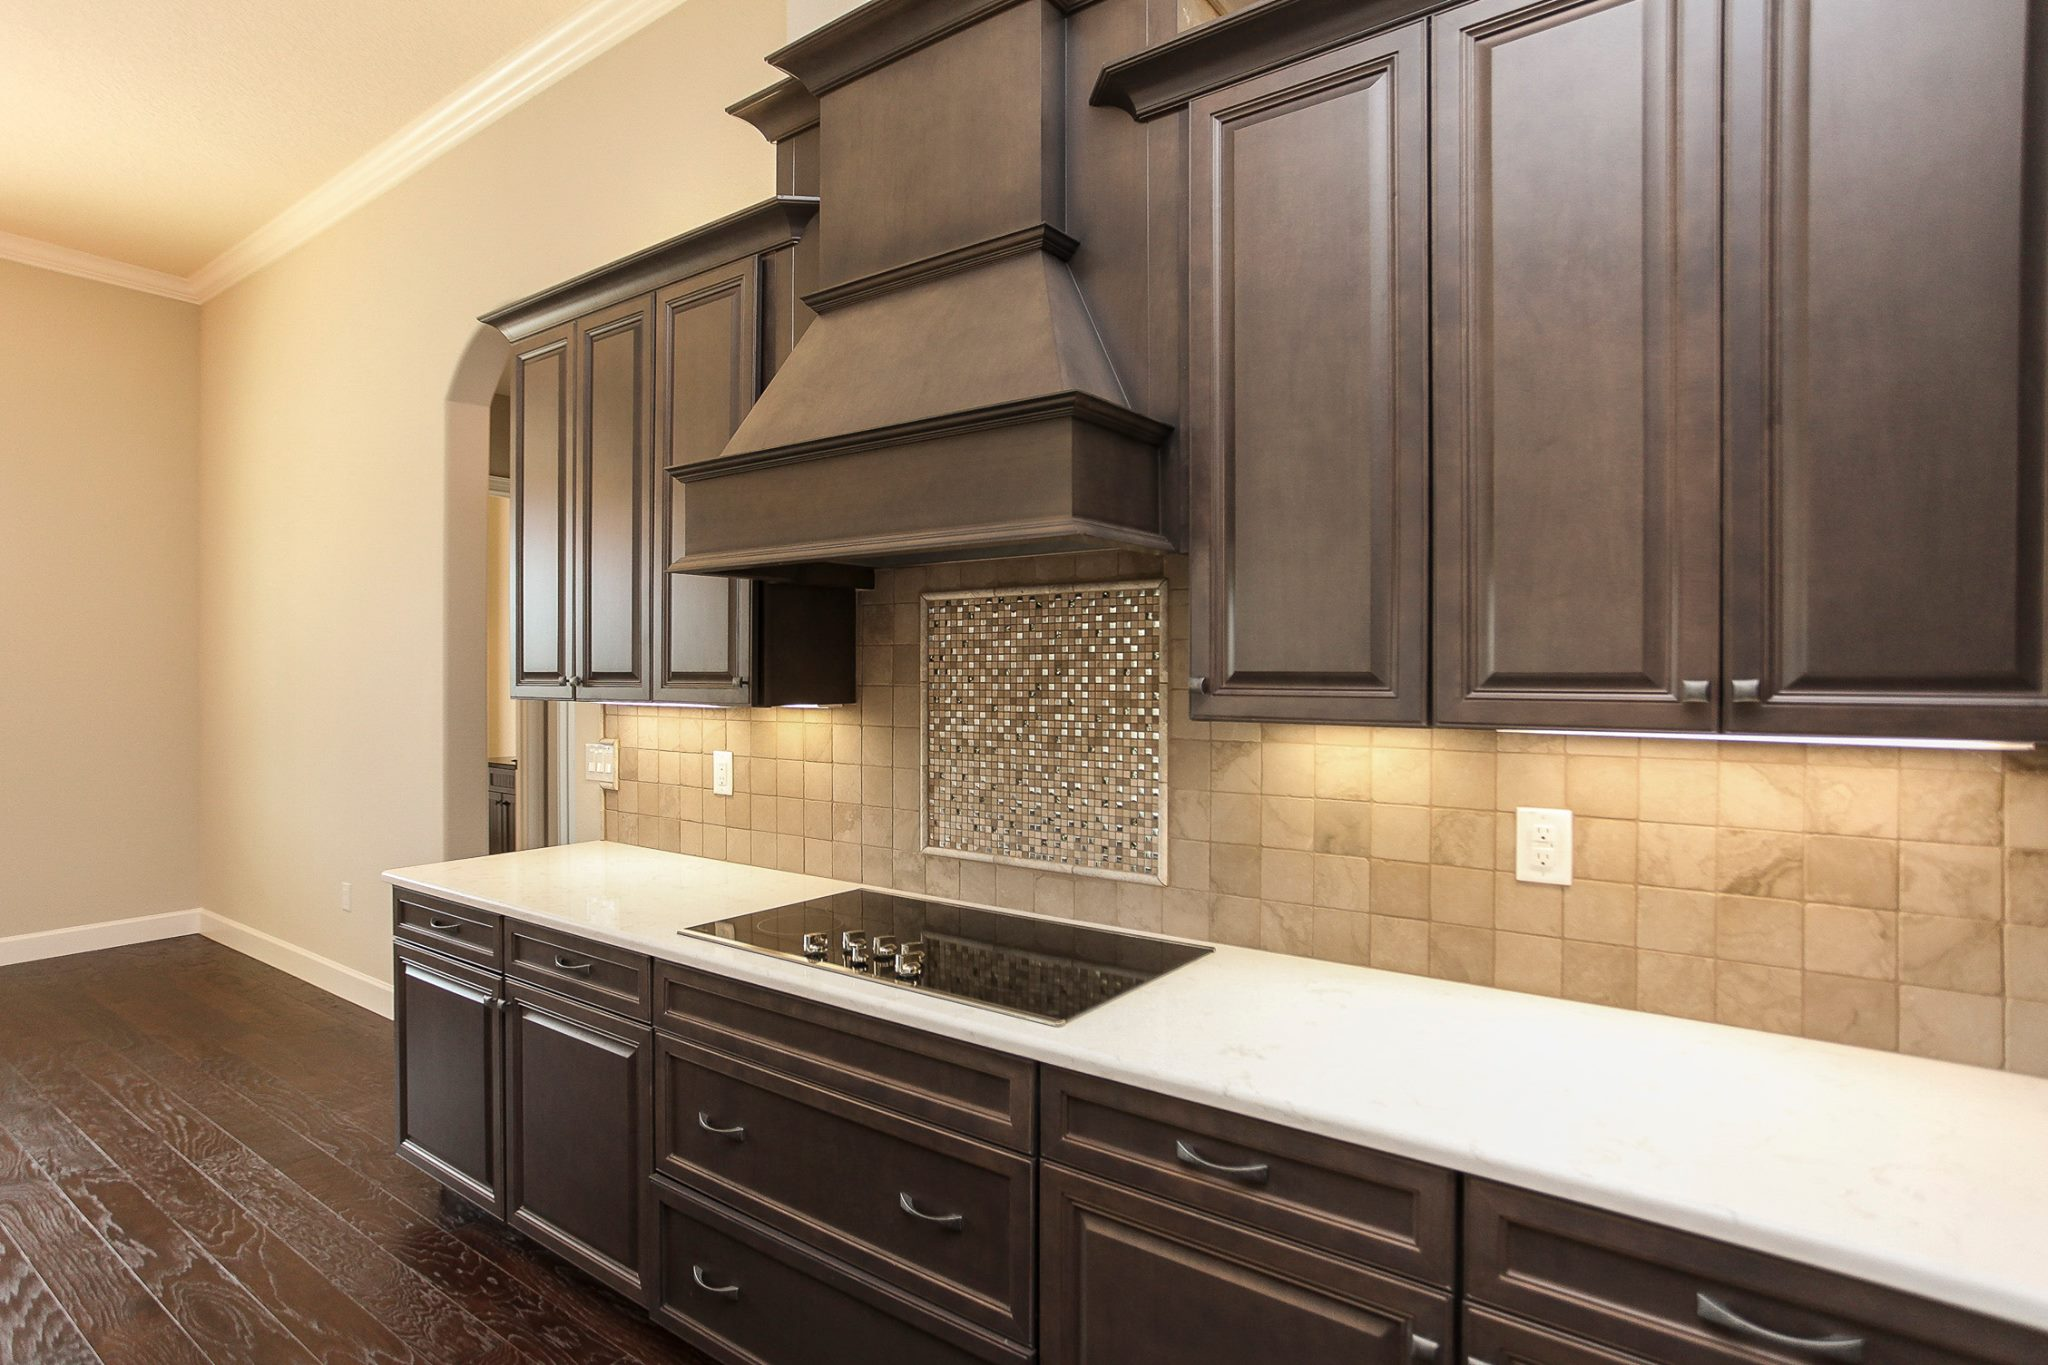 marsh kitchen cabinets cabinet countertop new construction with stanisci hood and cambria countertops hammond kitchens